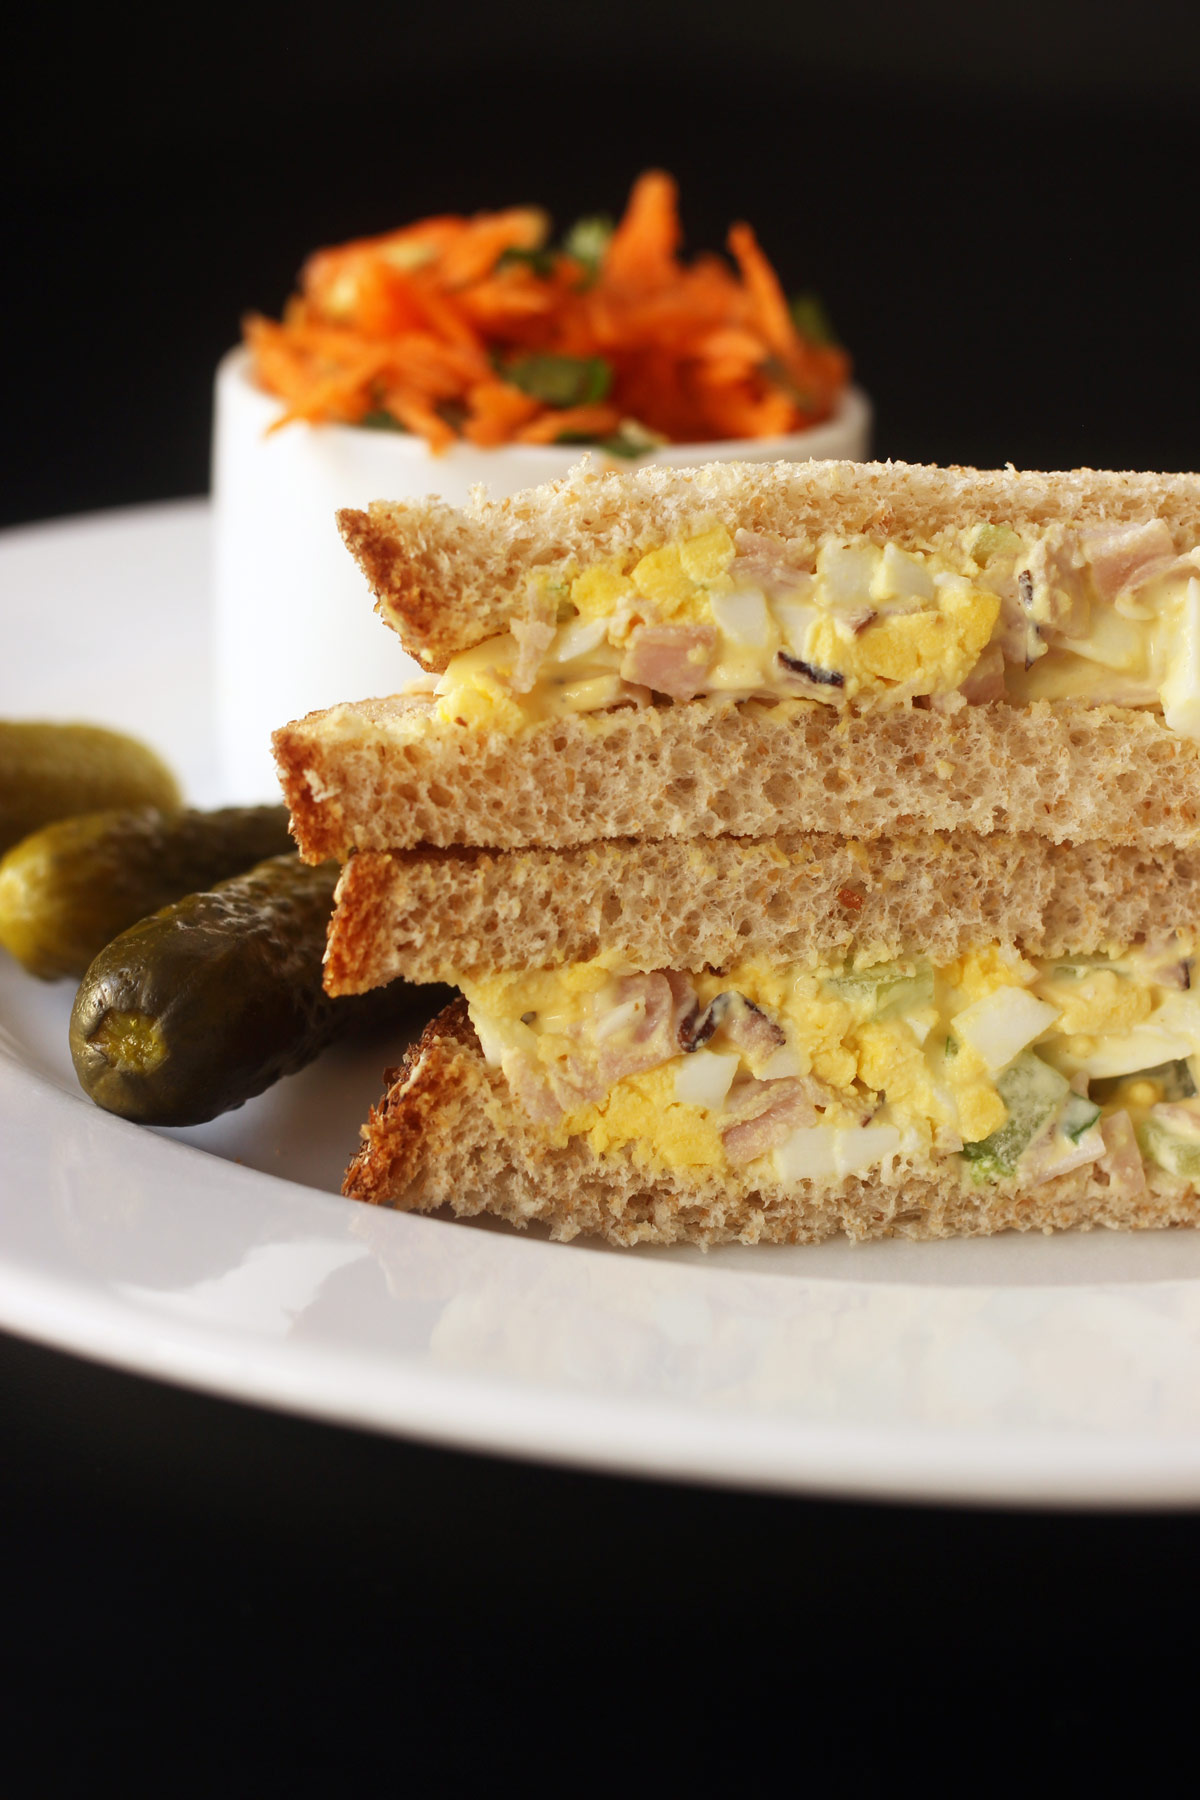 stacked halves of egg salad sandwich on plate with pickle